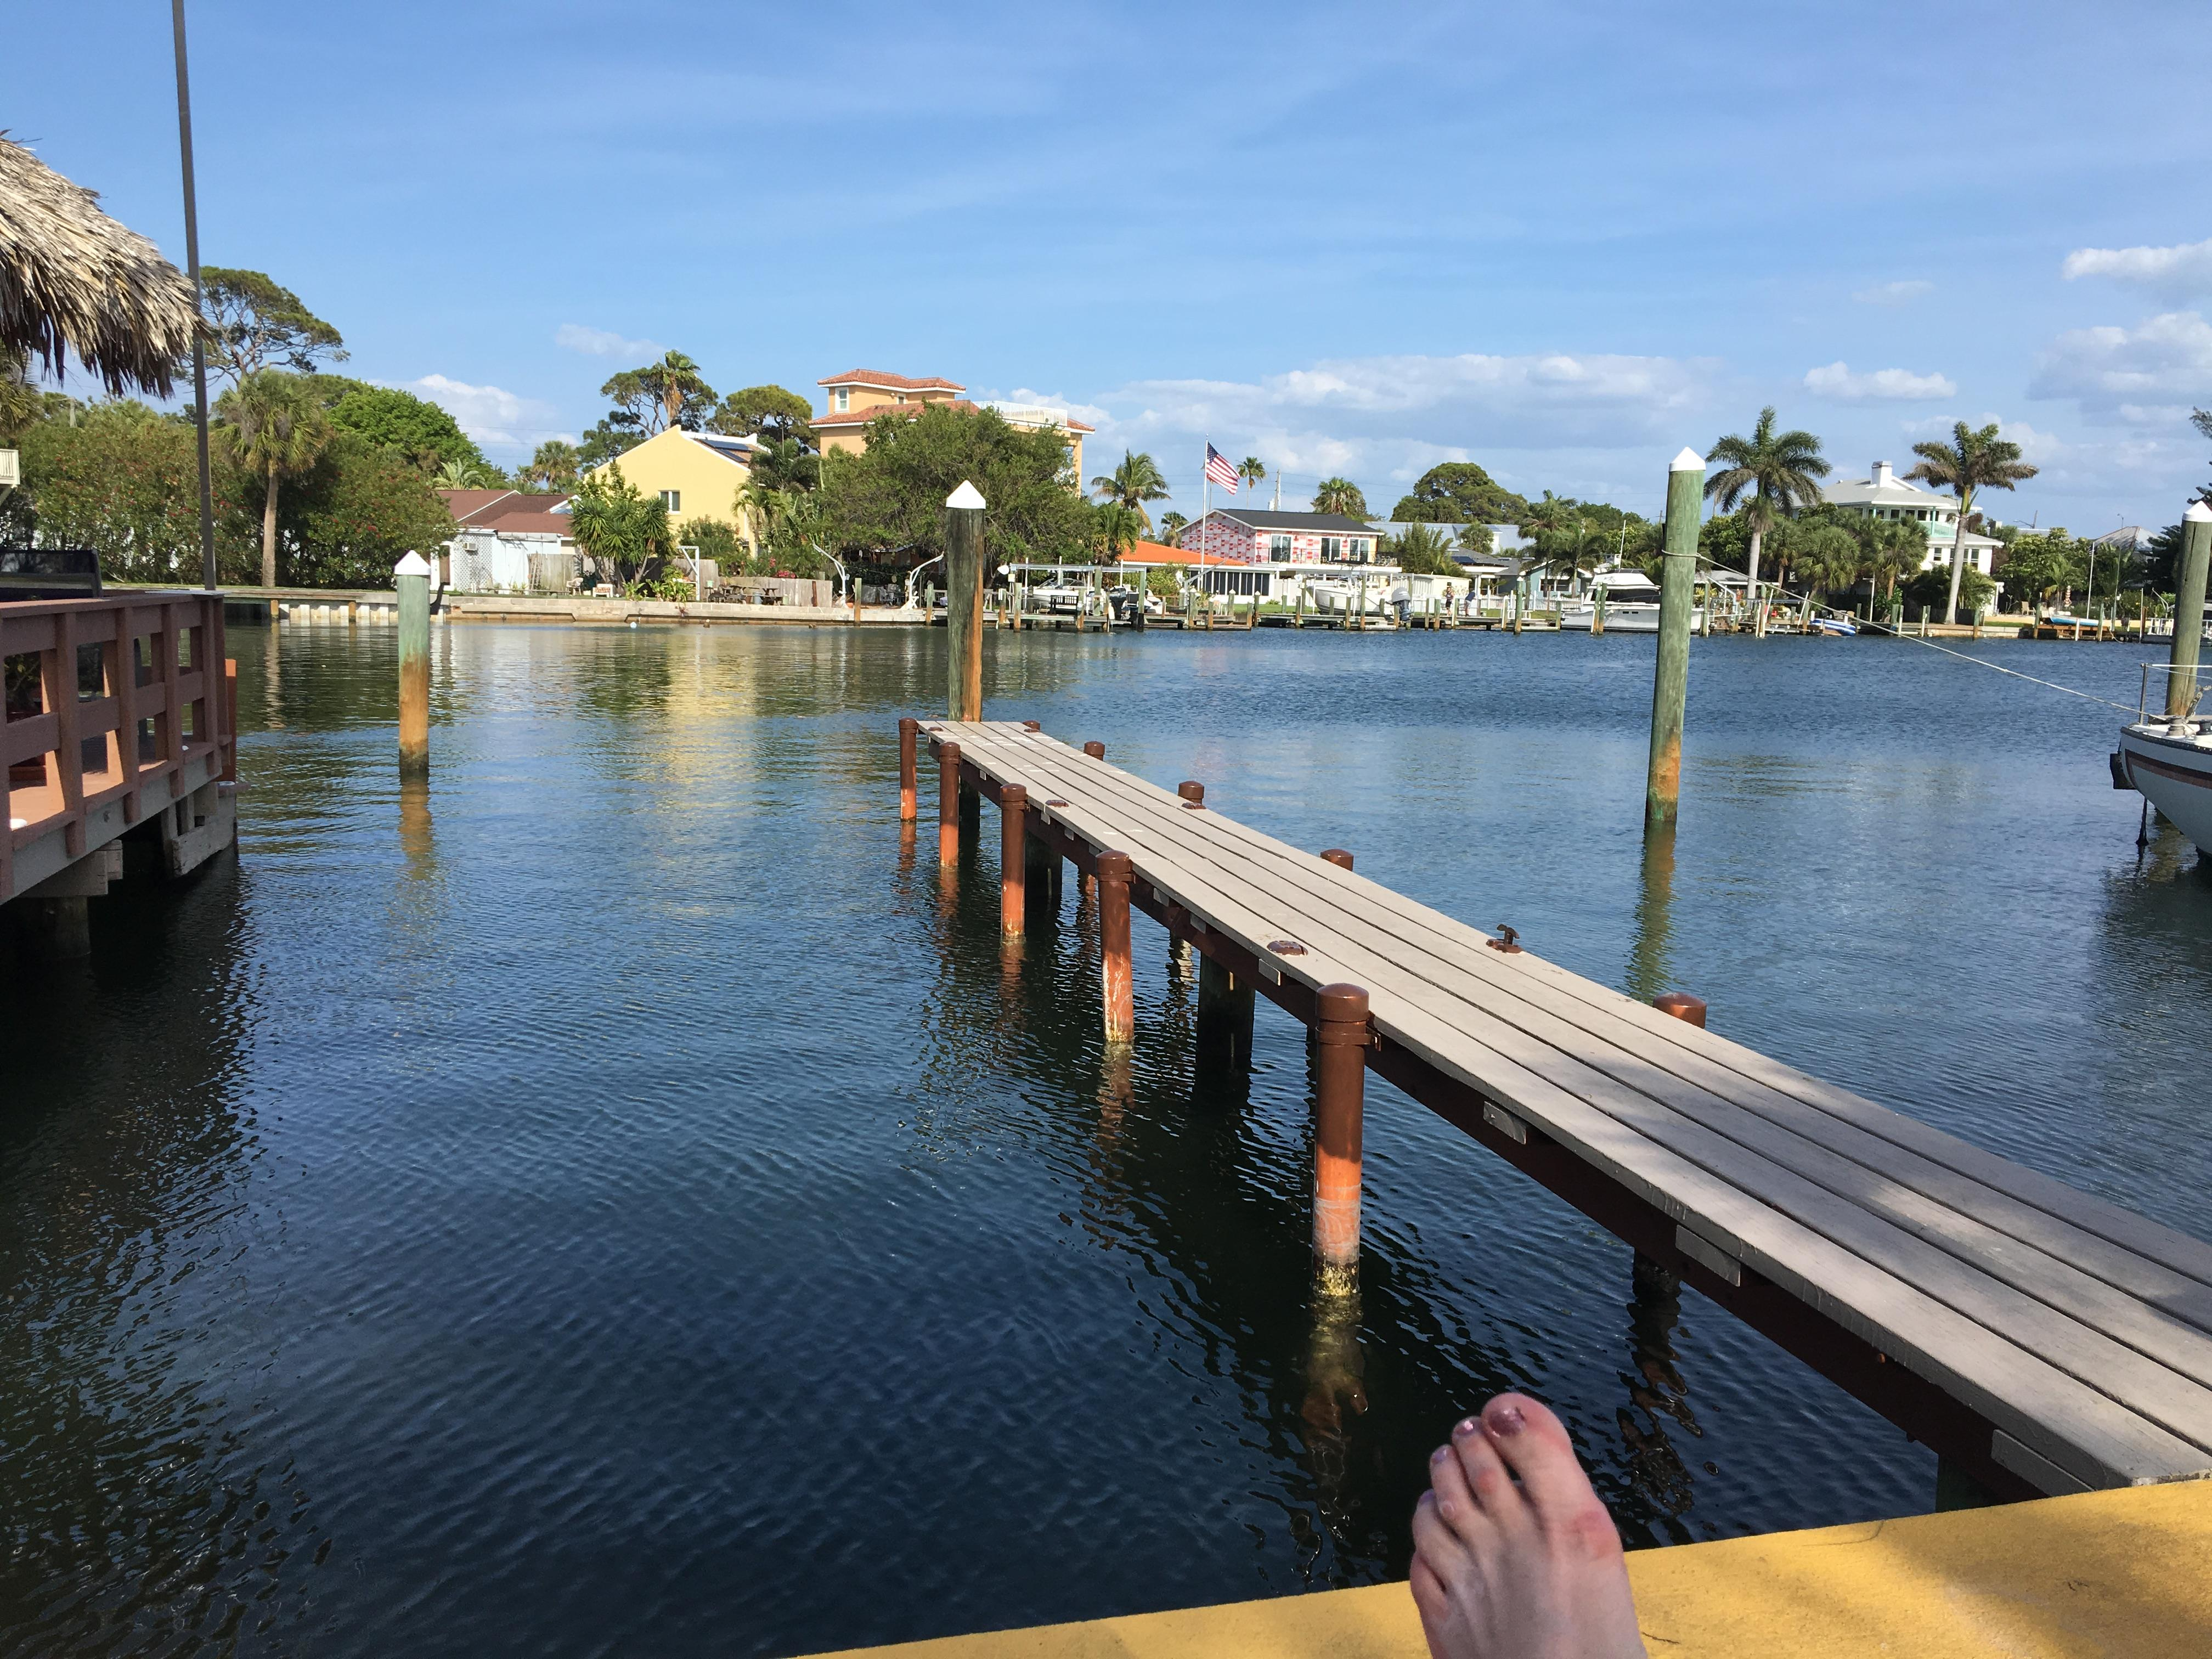 Another relaxing day at bay palms